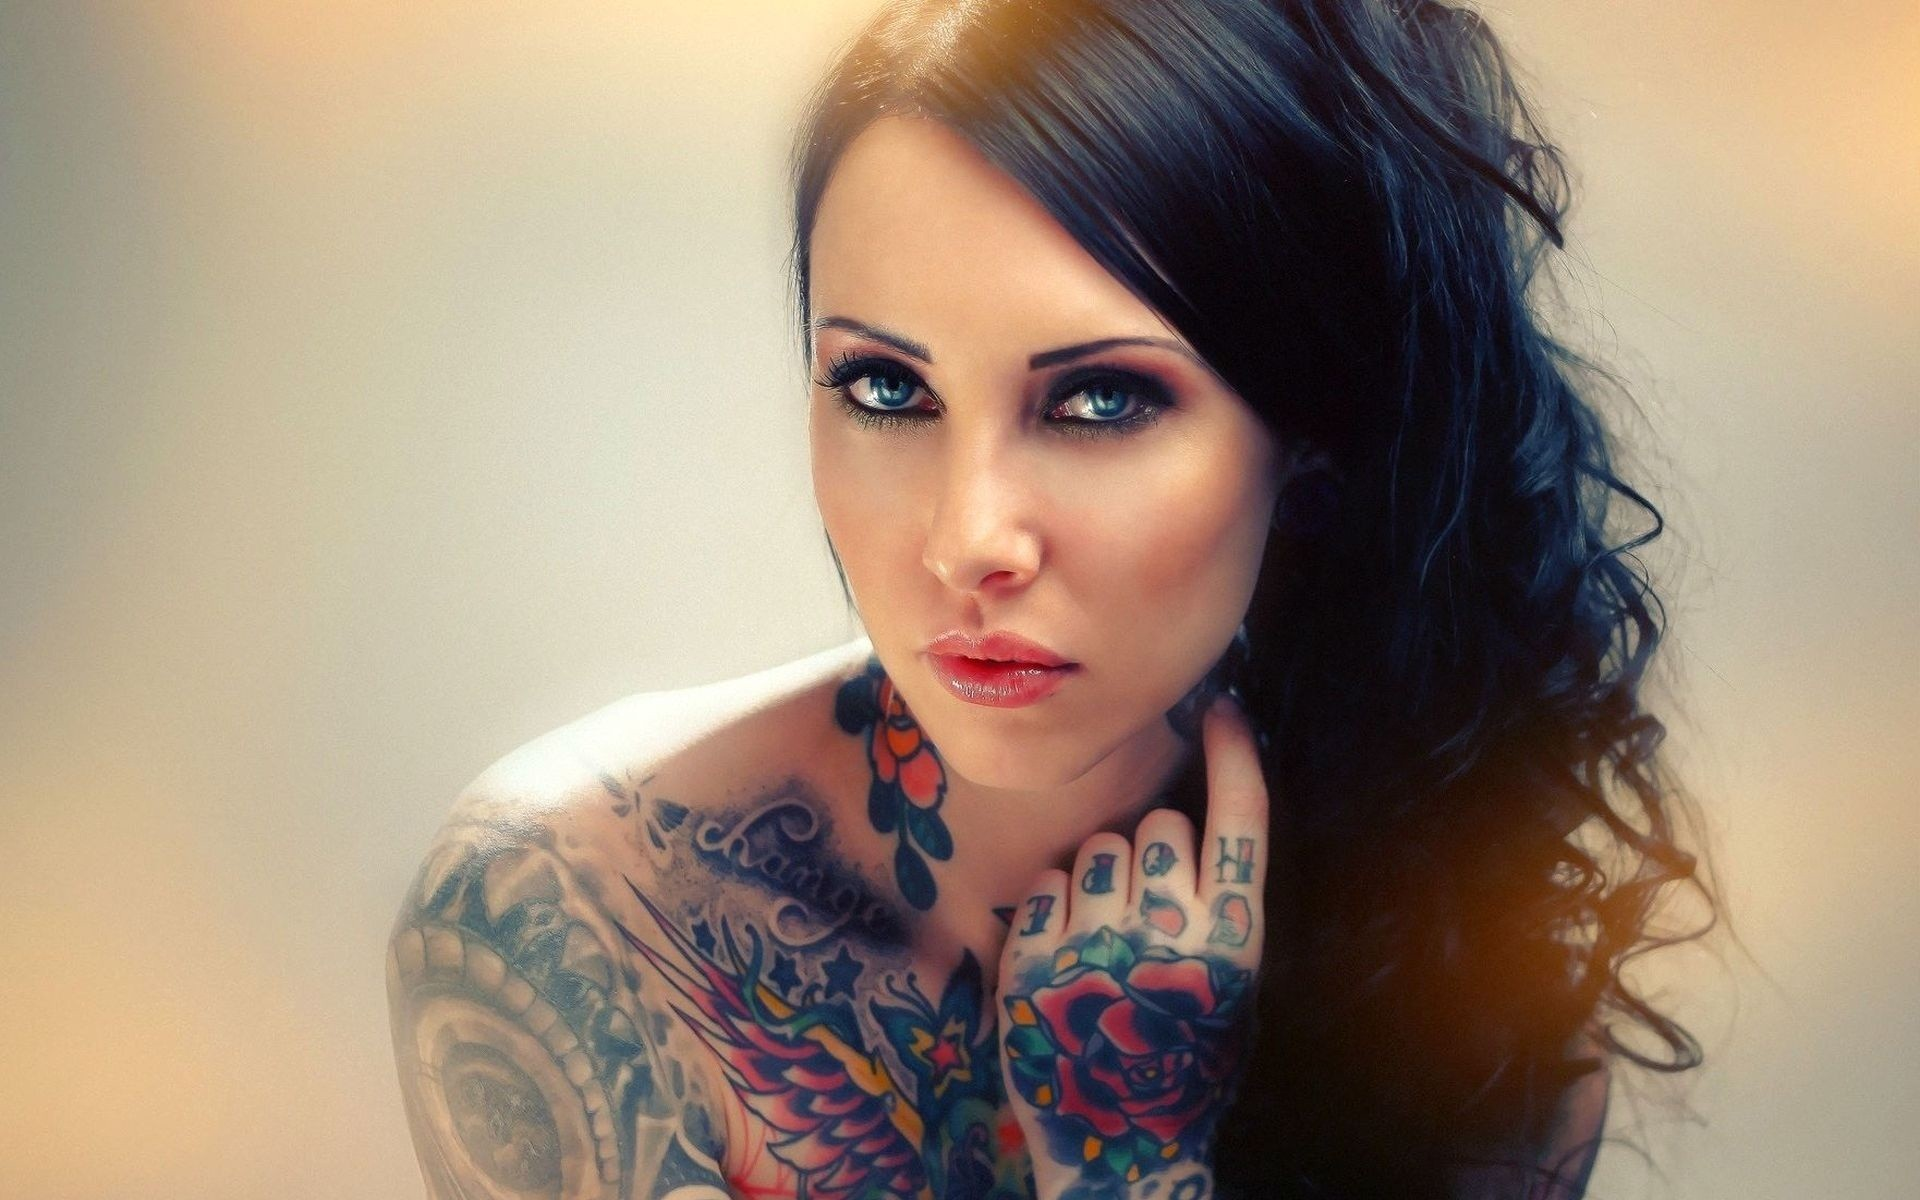 Hd wallpaper ladies - 3758 Awesome Tattoo Model Wallpaper